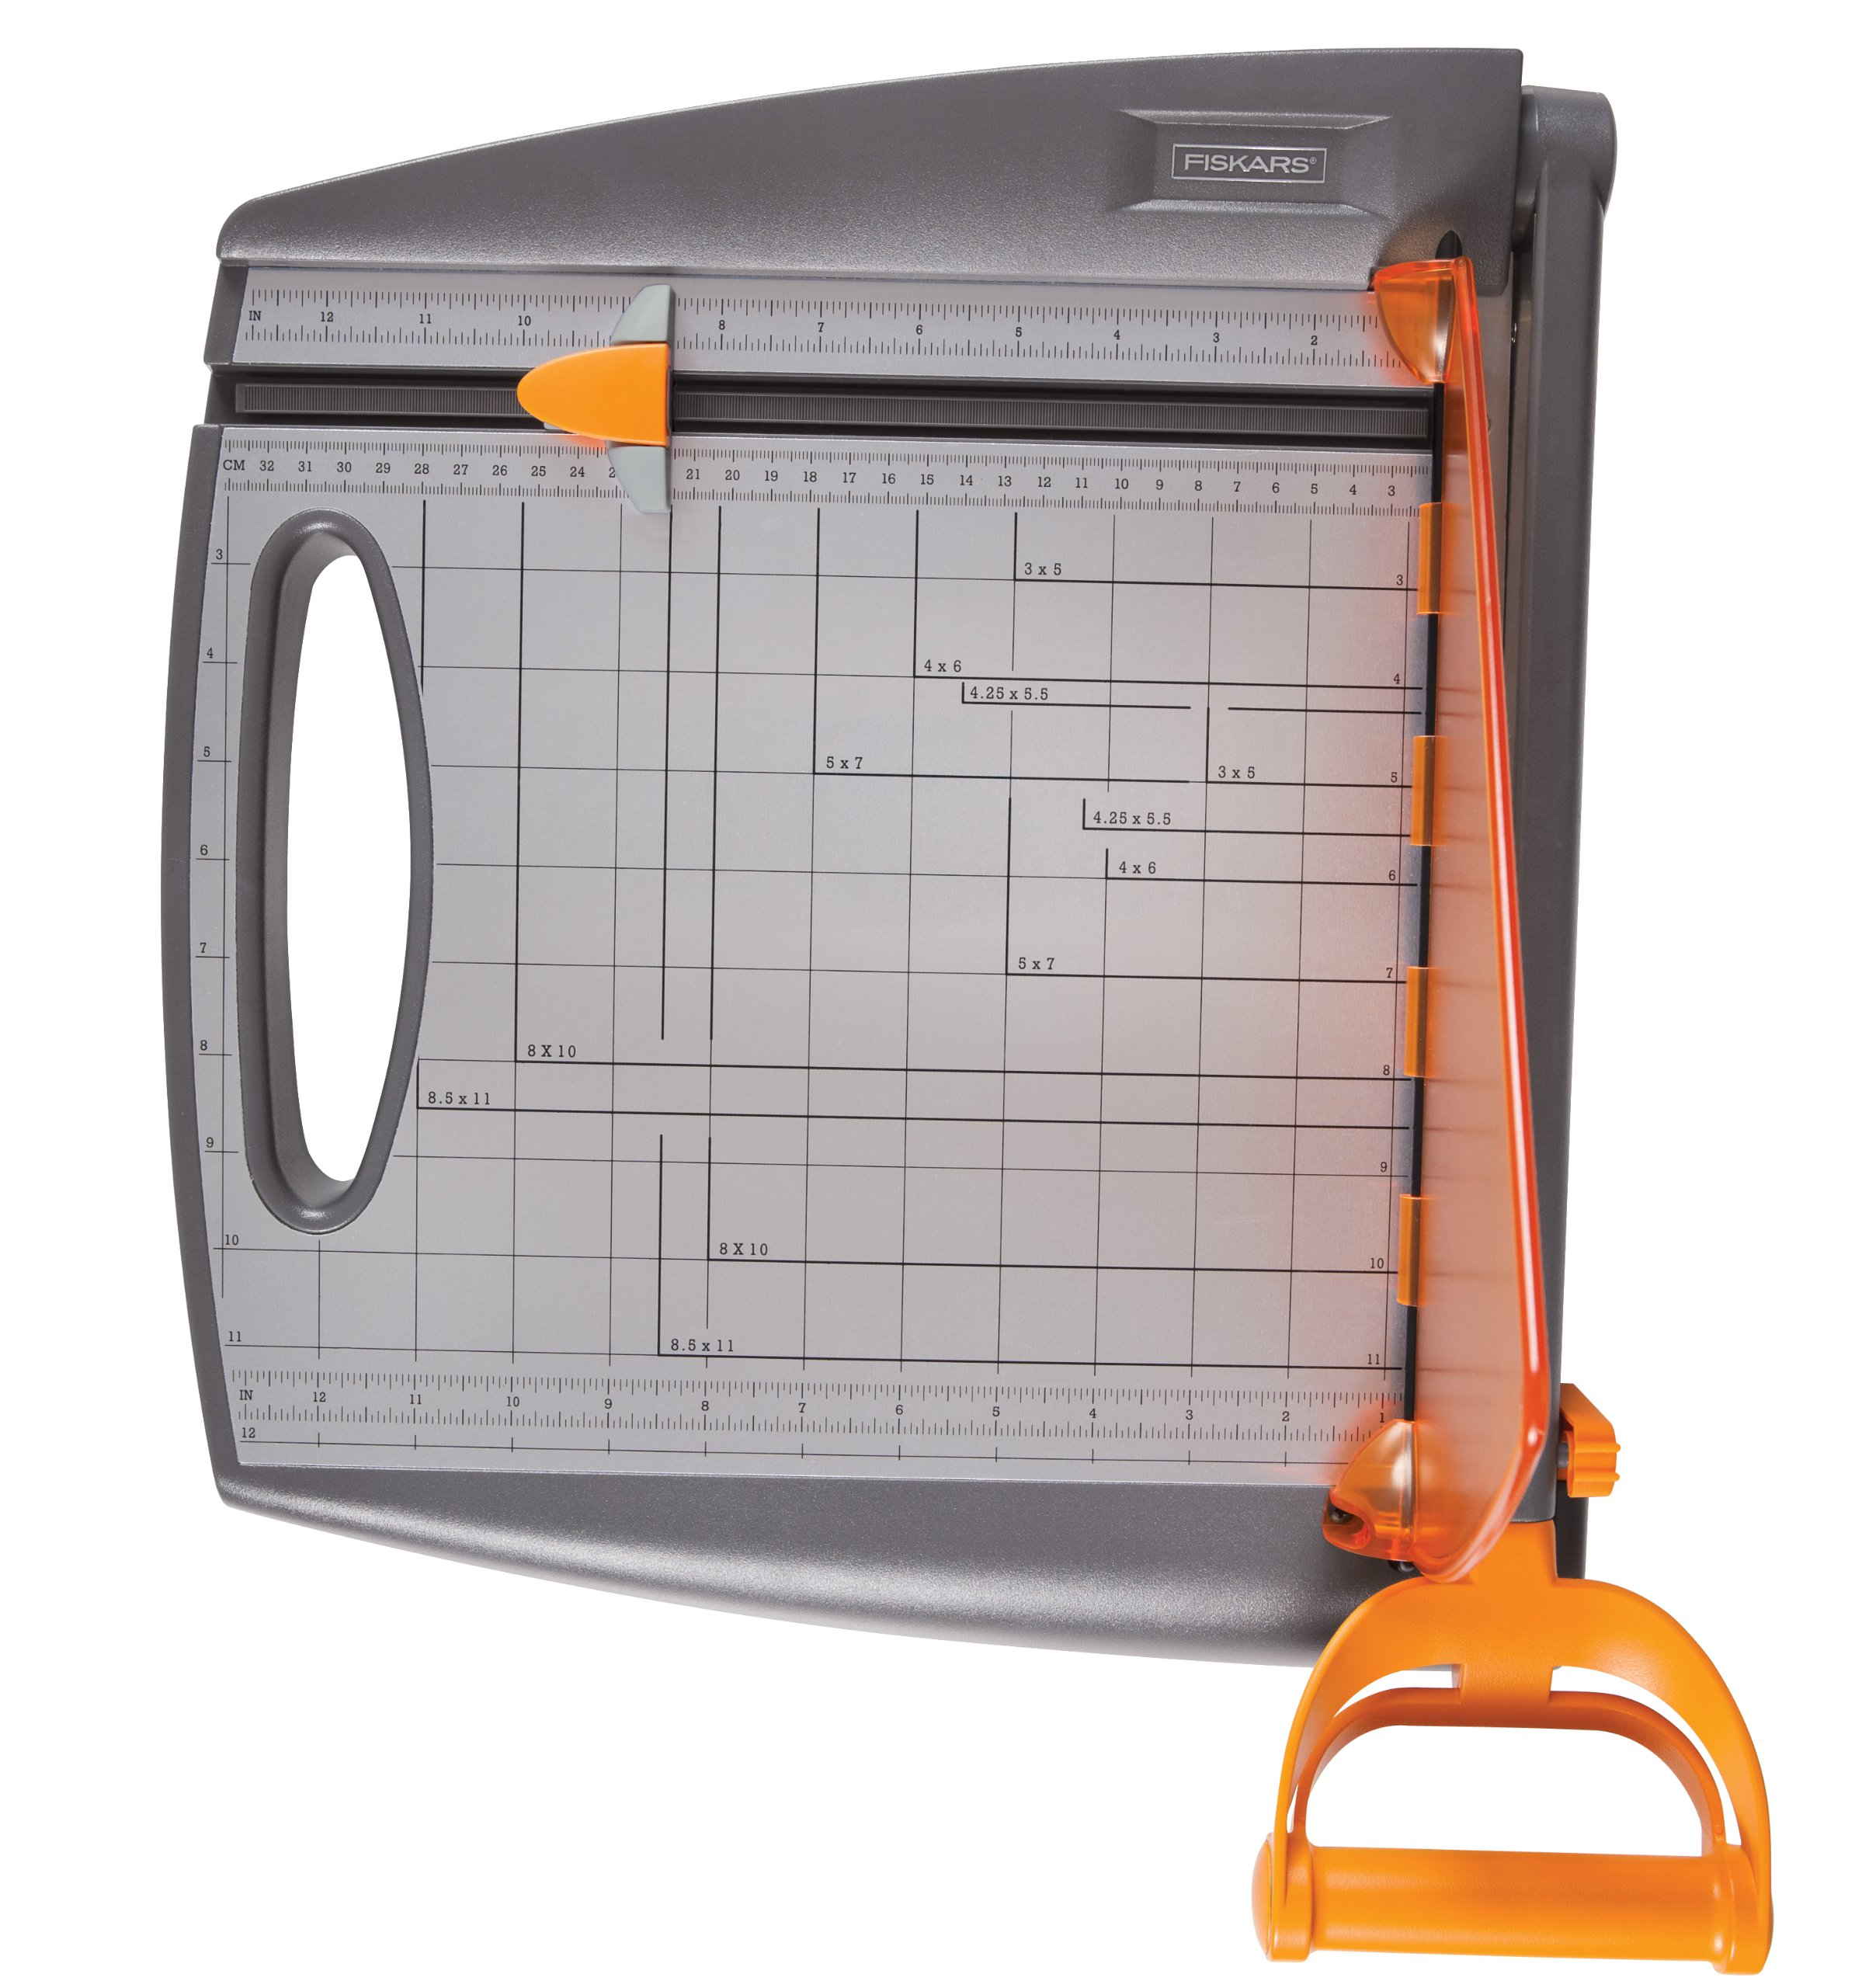 Fiskars 197300-1001 Paper Crafting Bypass Trimmer, 12-Inch by Fiskars (Image #3)